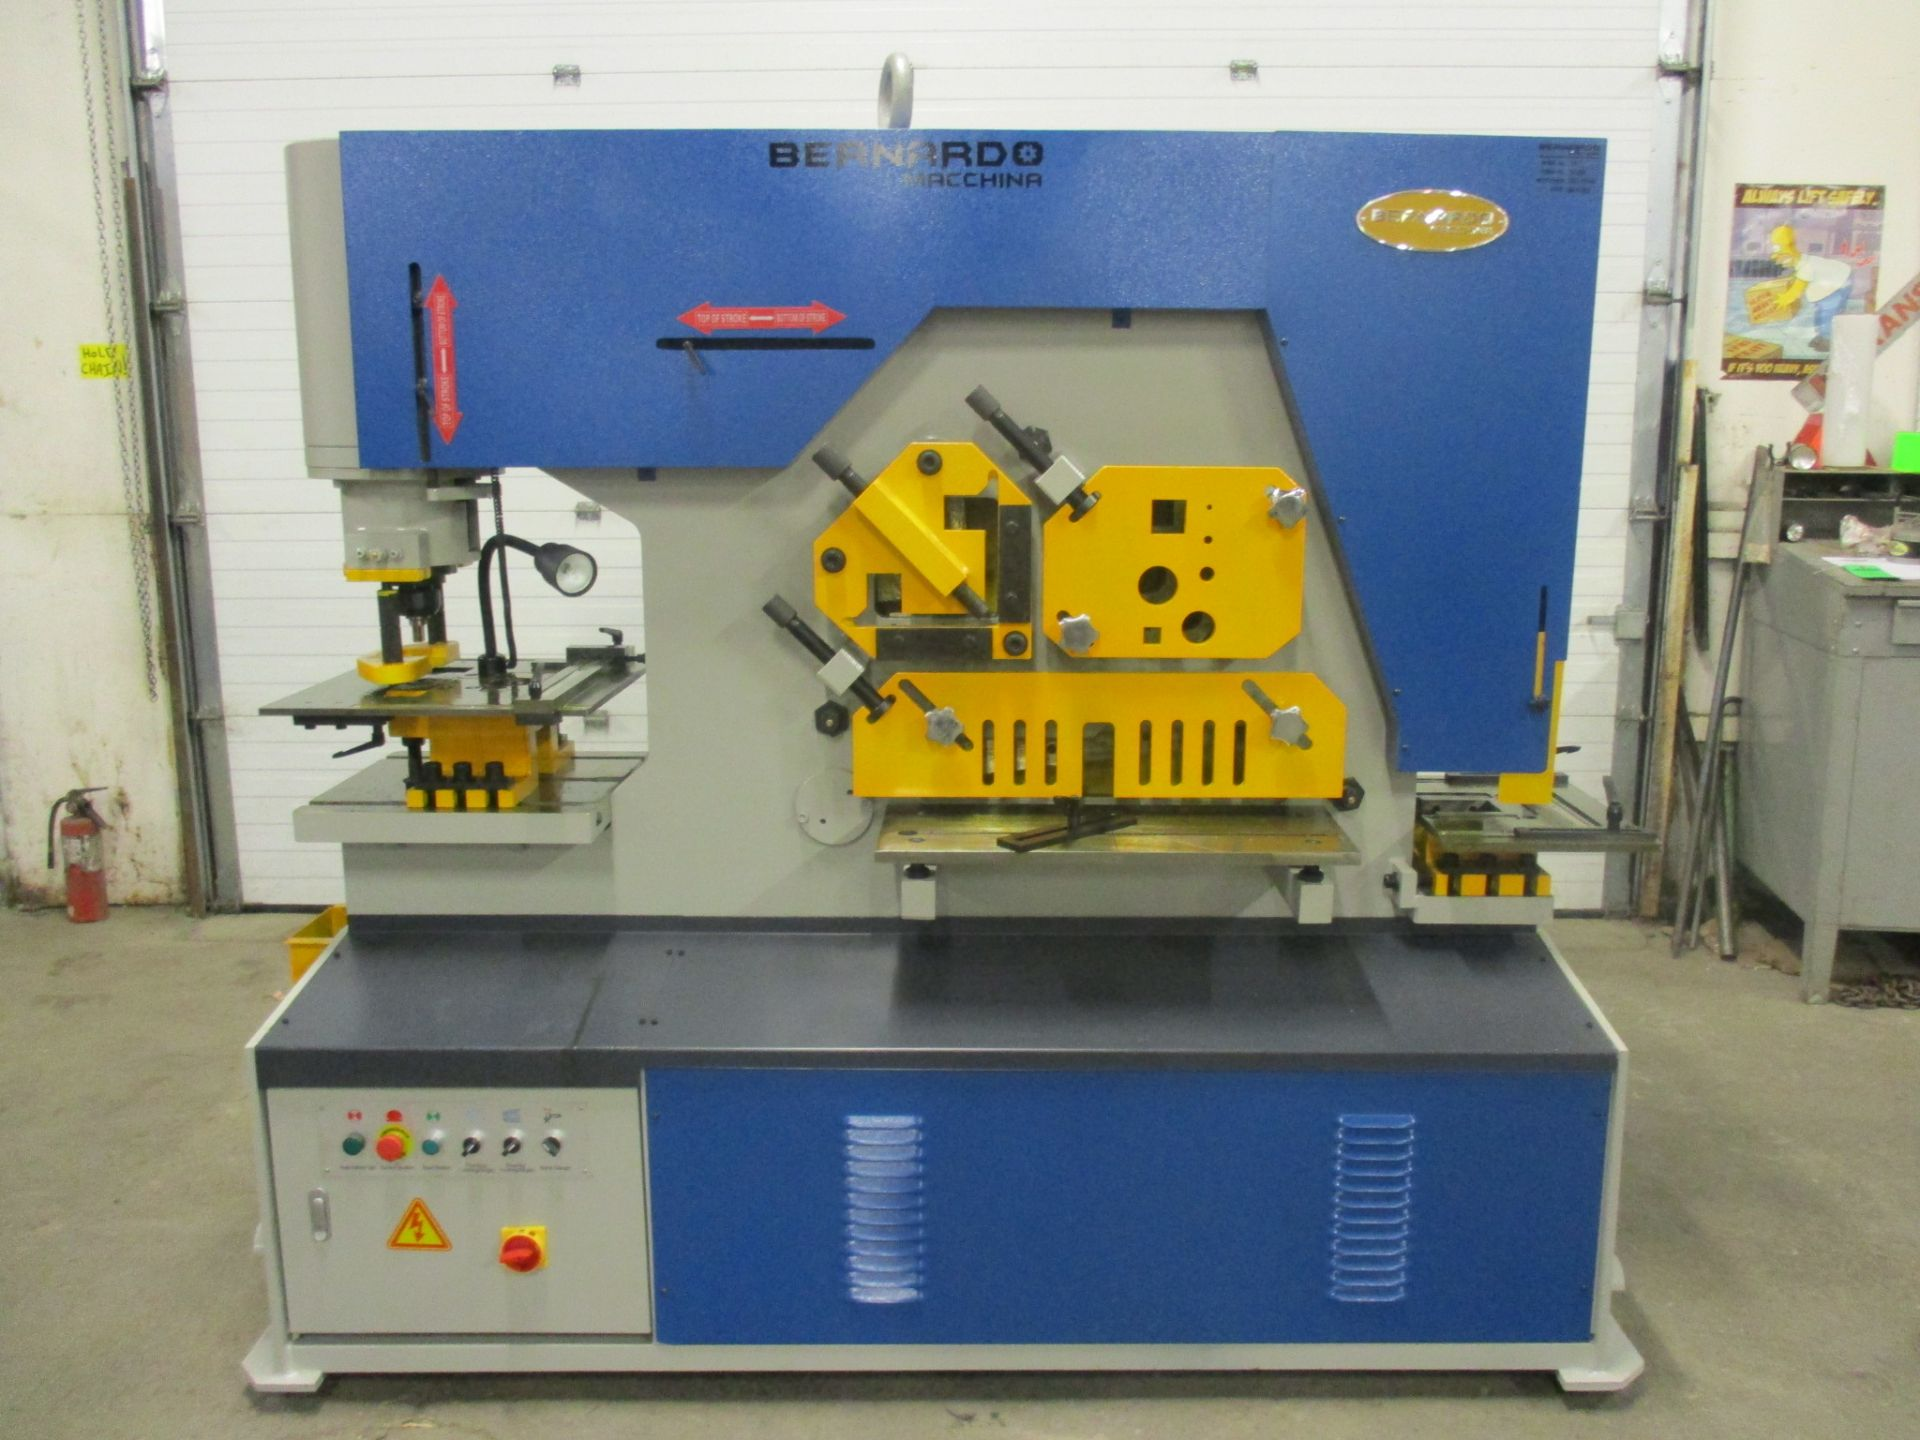 Bernardo Macchina 125 Ton Capacity Hydraulic Ironworker - complete with dies and punches - Dual